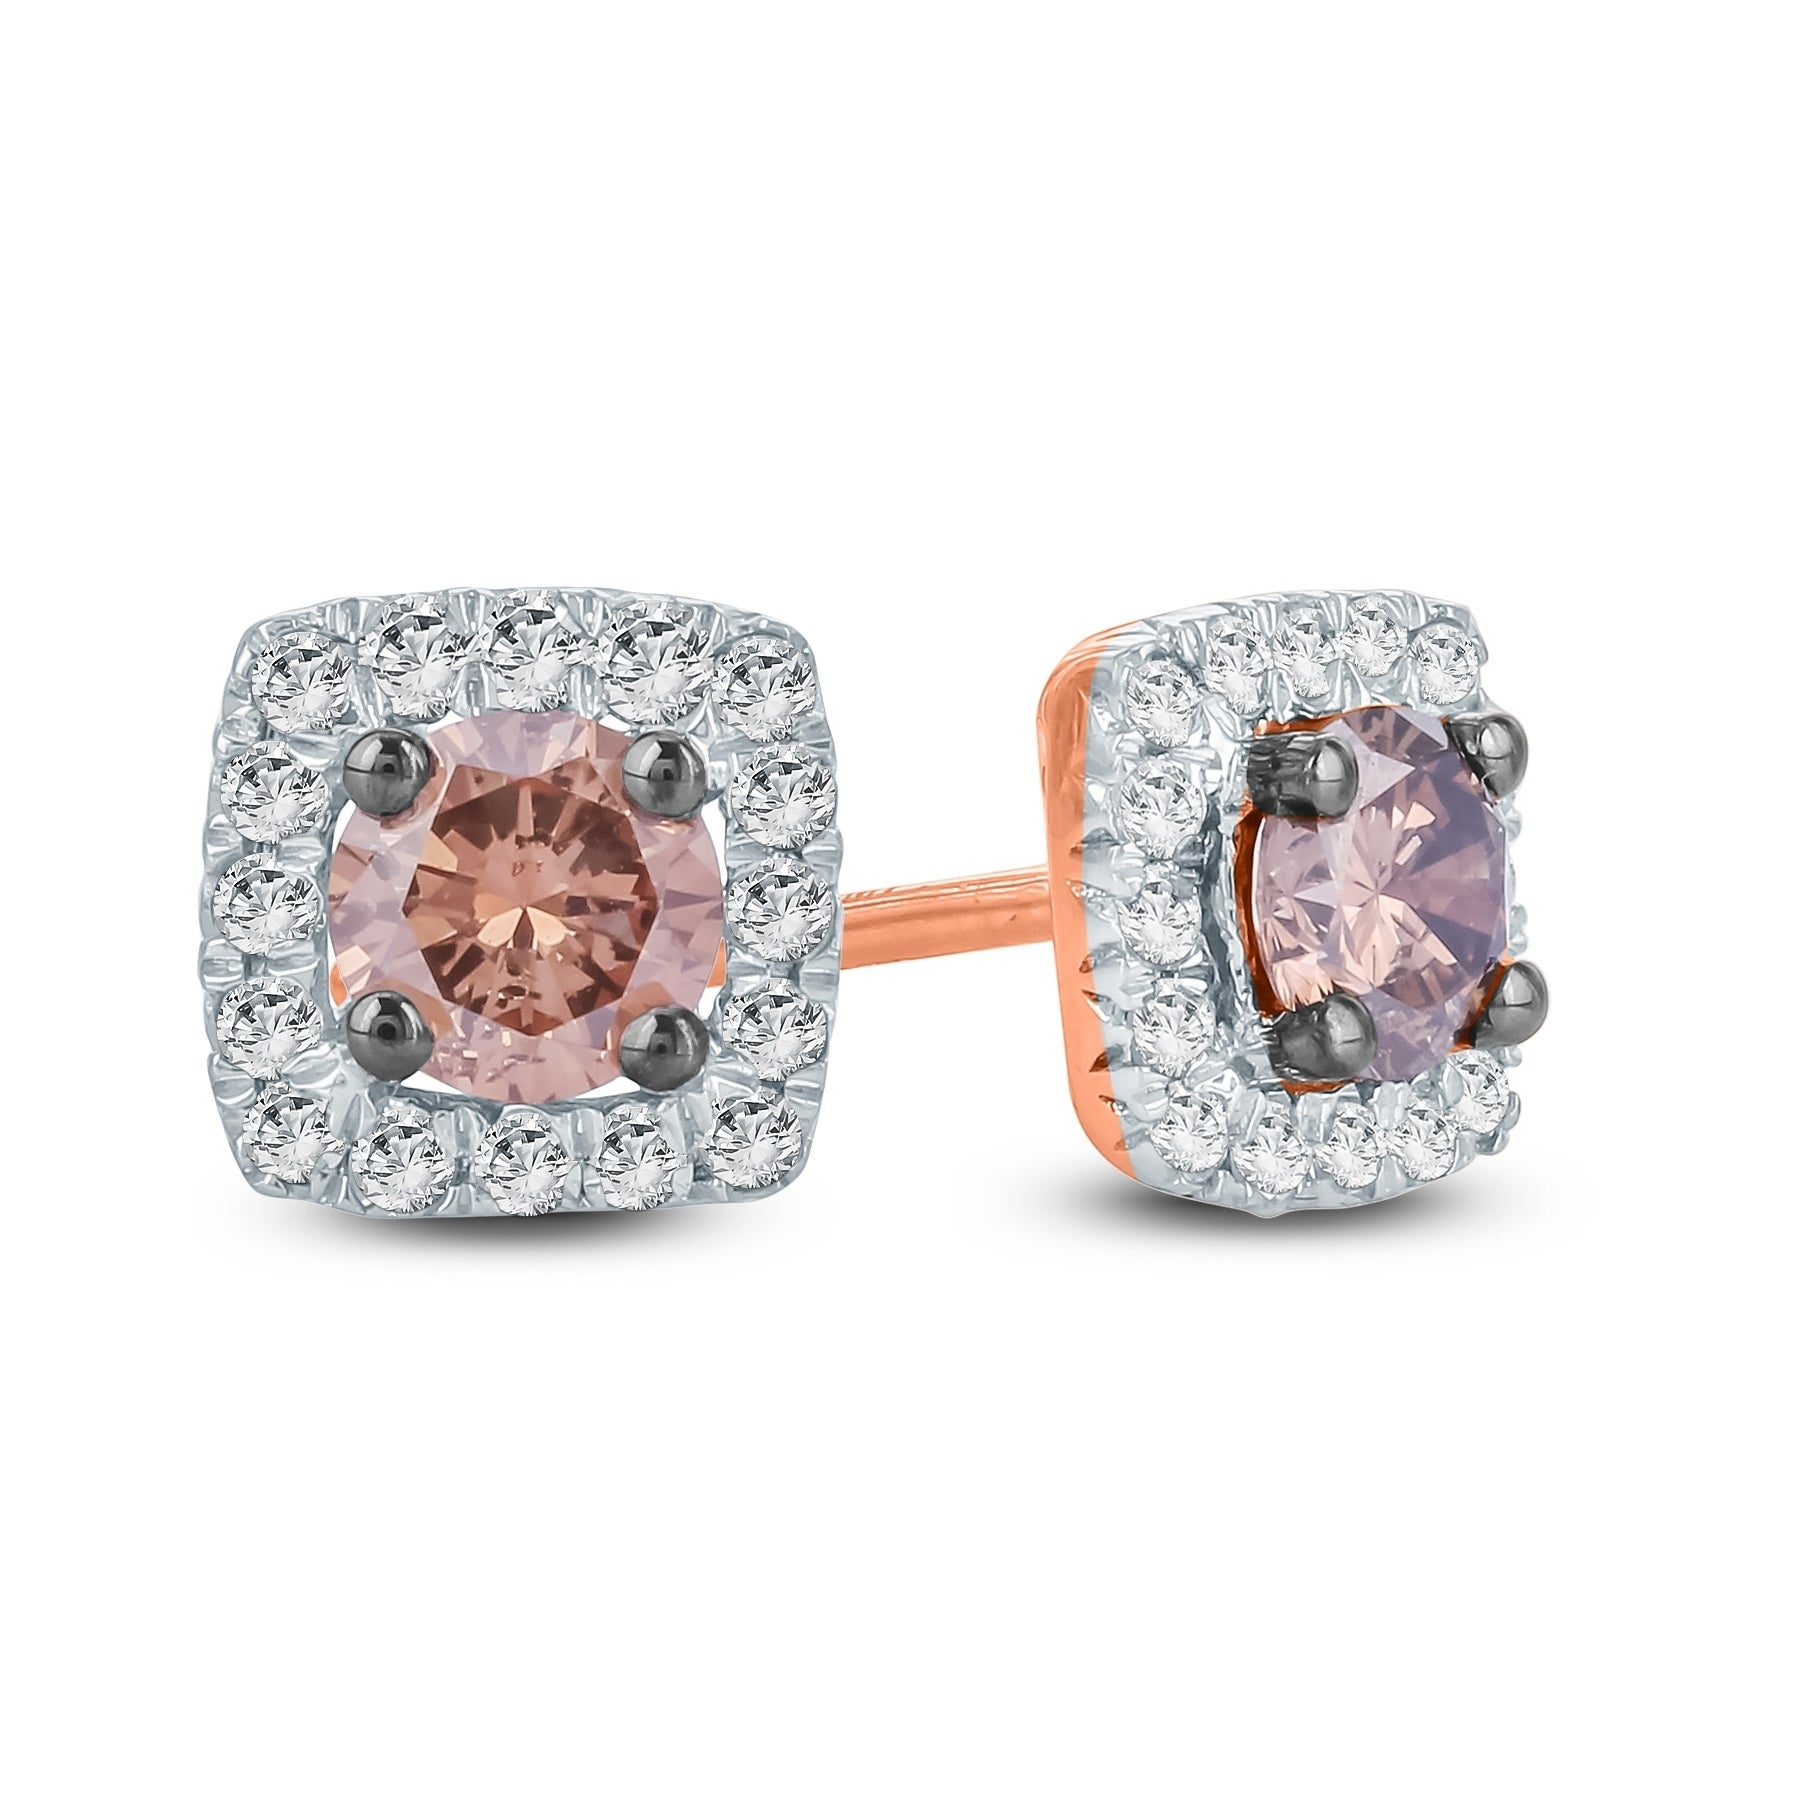 White Gold Plated Silver Prism Jewel 0.33 Carat Round Natural Brown Diamond Screw Back Prong Set Stud Earrings